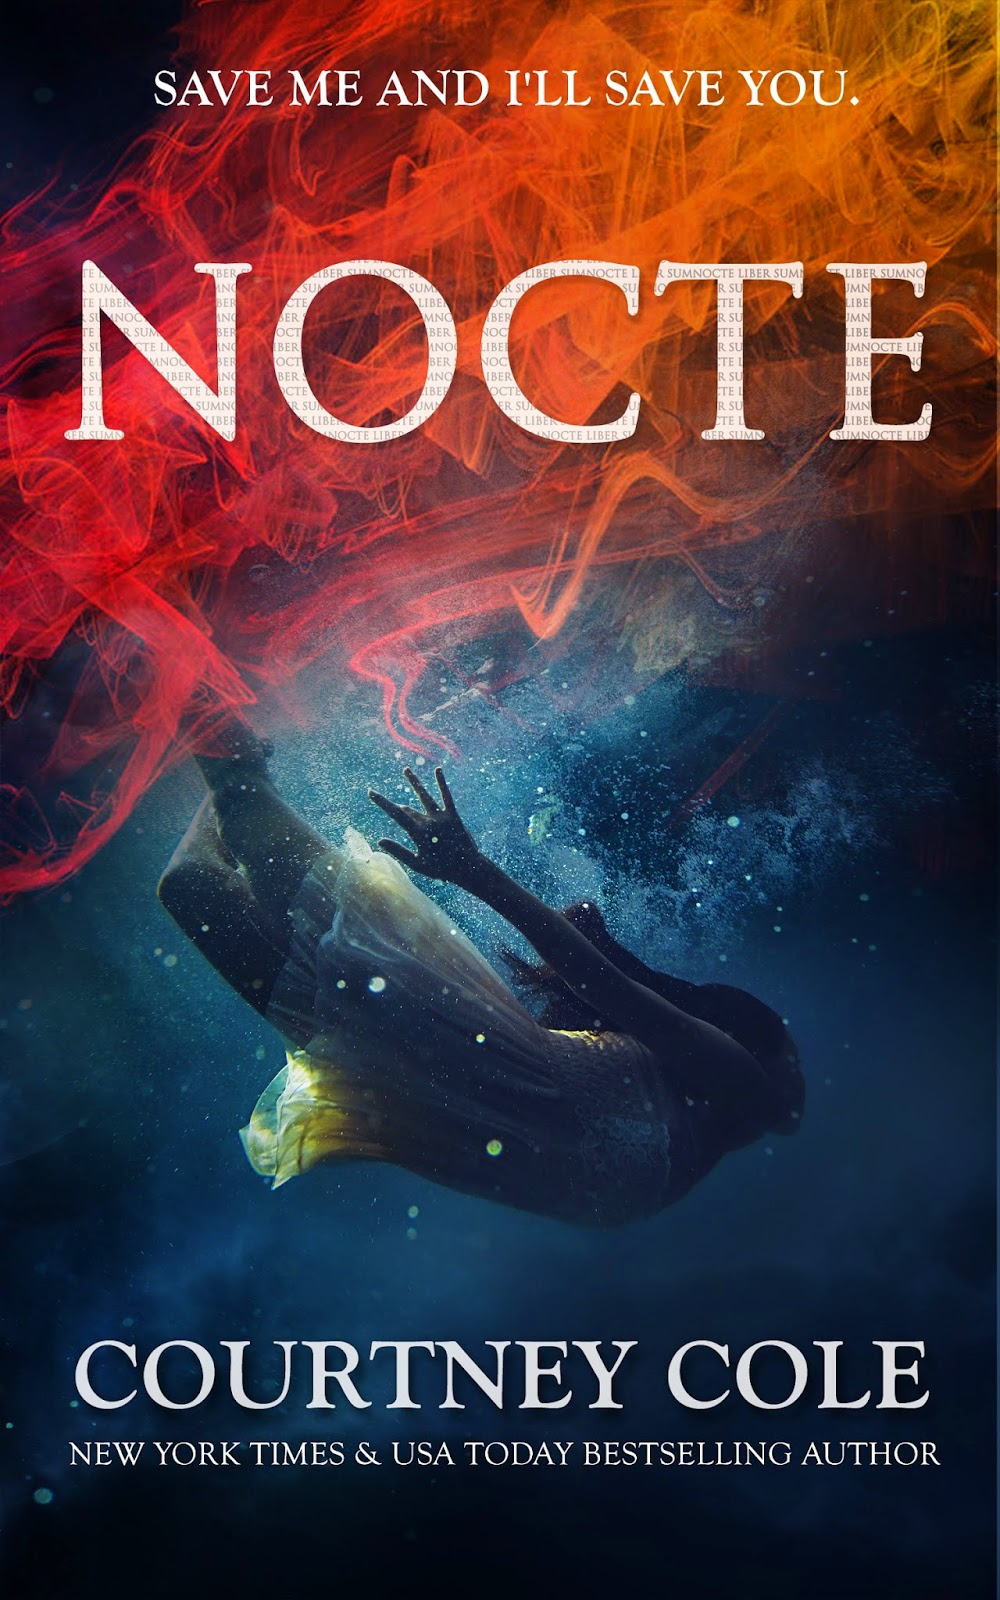 https://www.goodreads.com/book/show/23312692-nocte?from_search=true